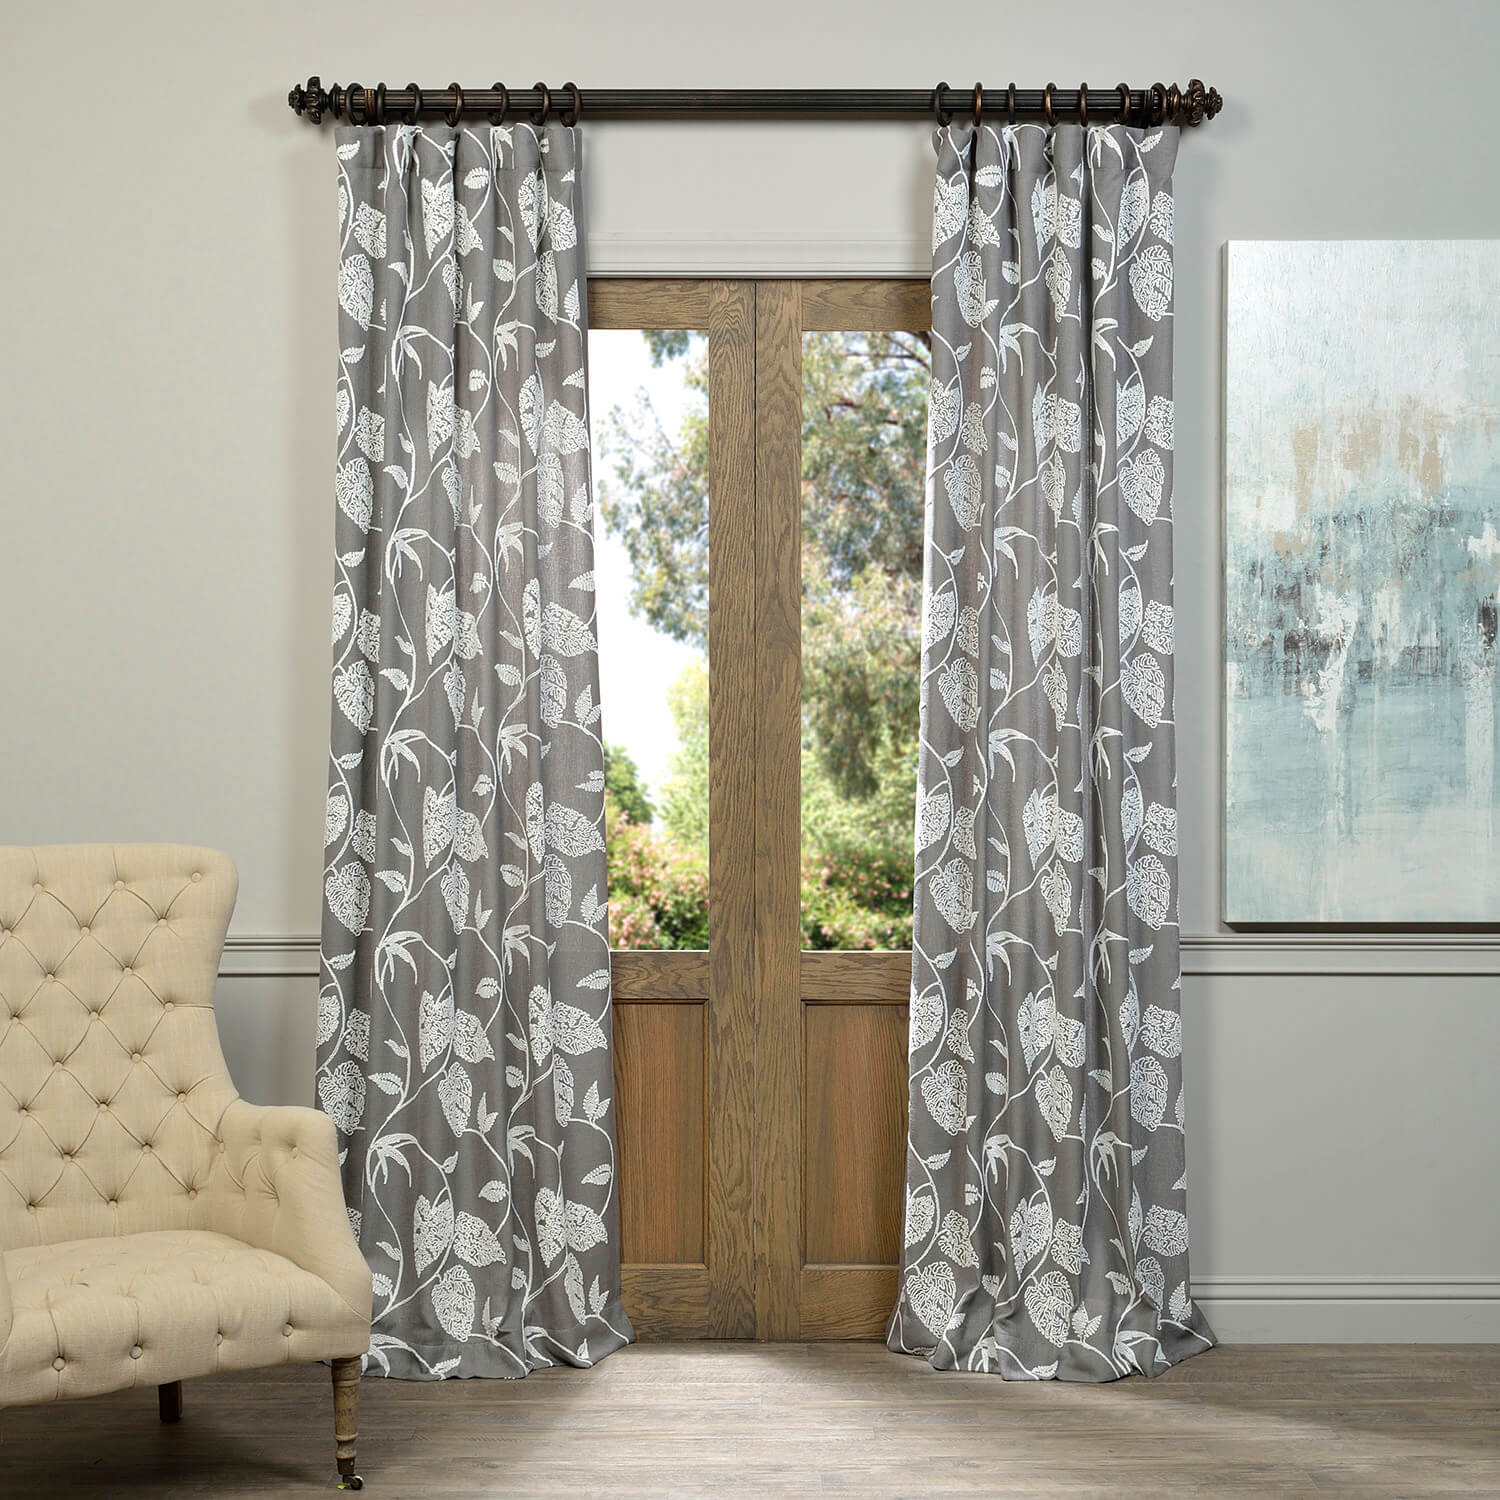 Vine Grey Embroidered Crewel Faux Linen Curtain